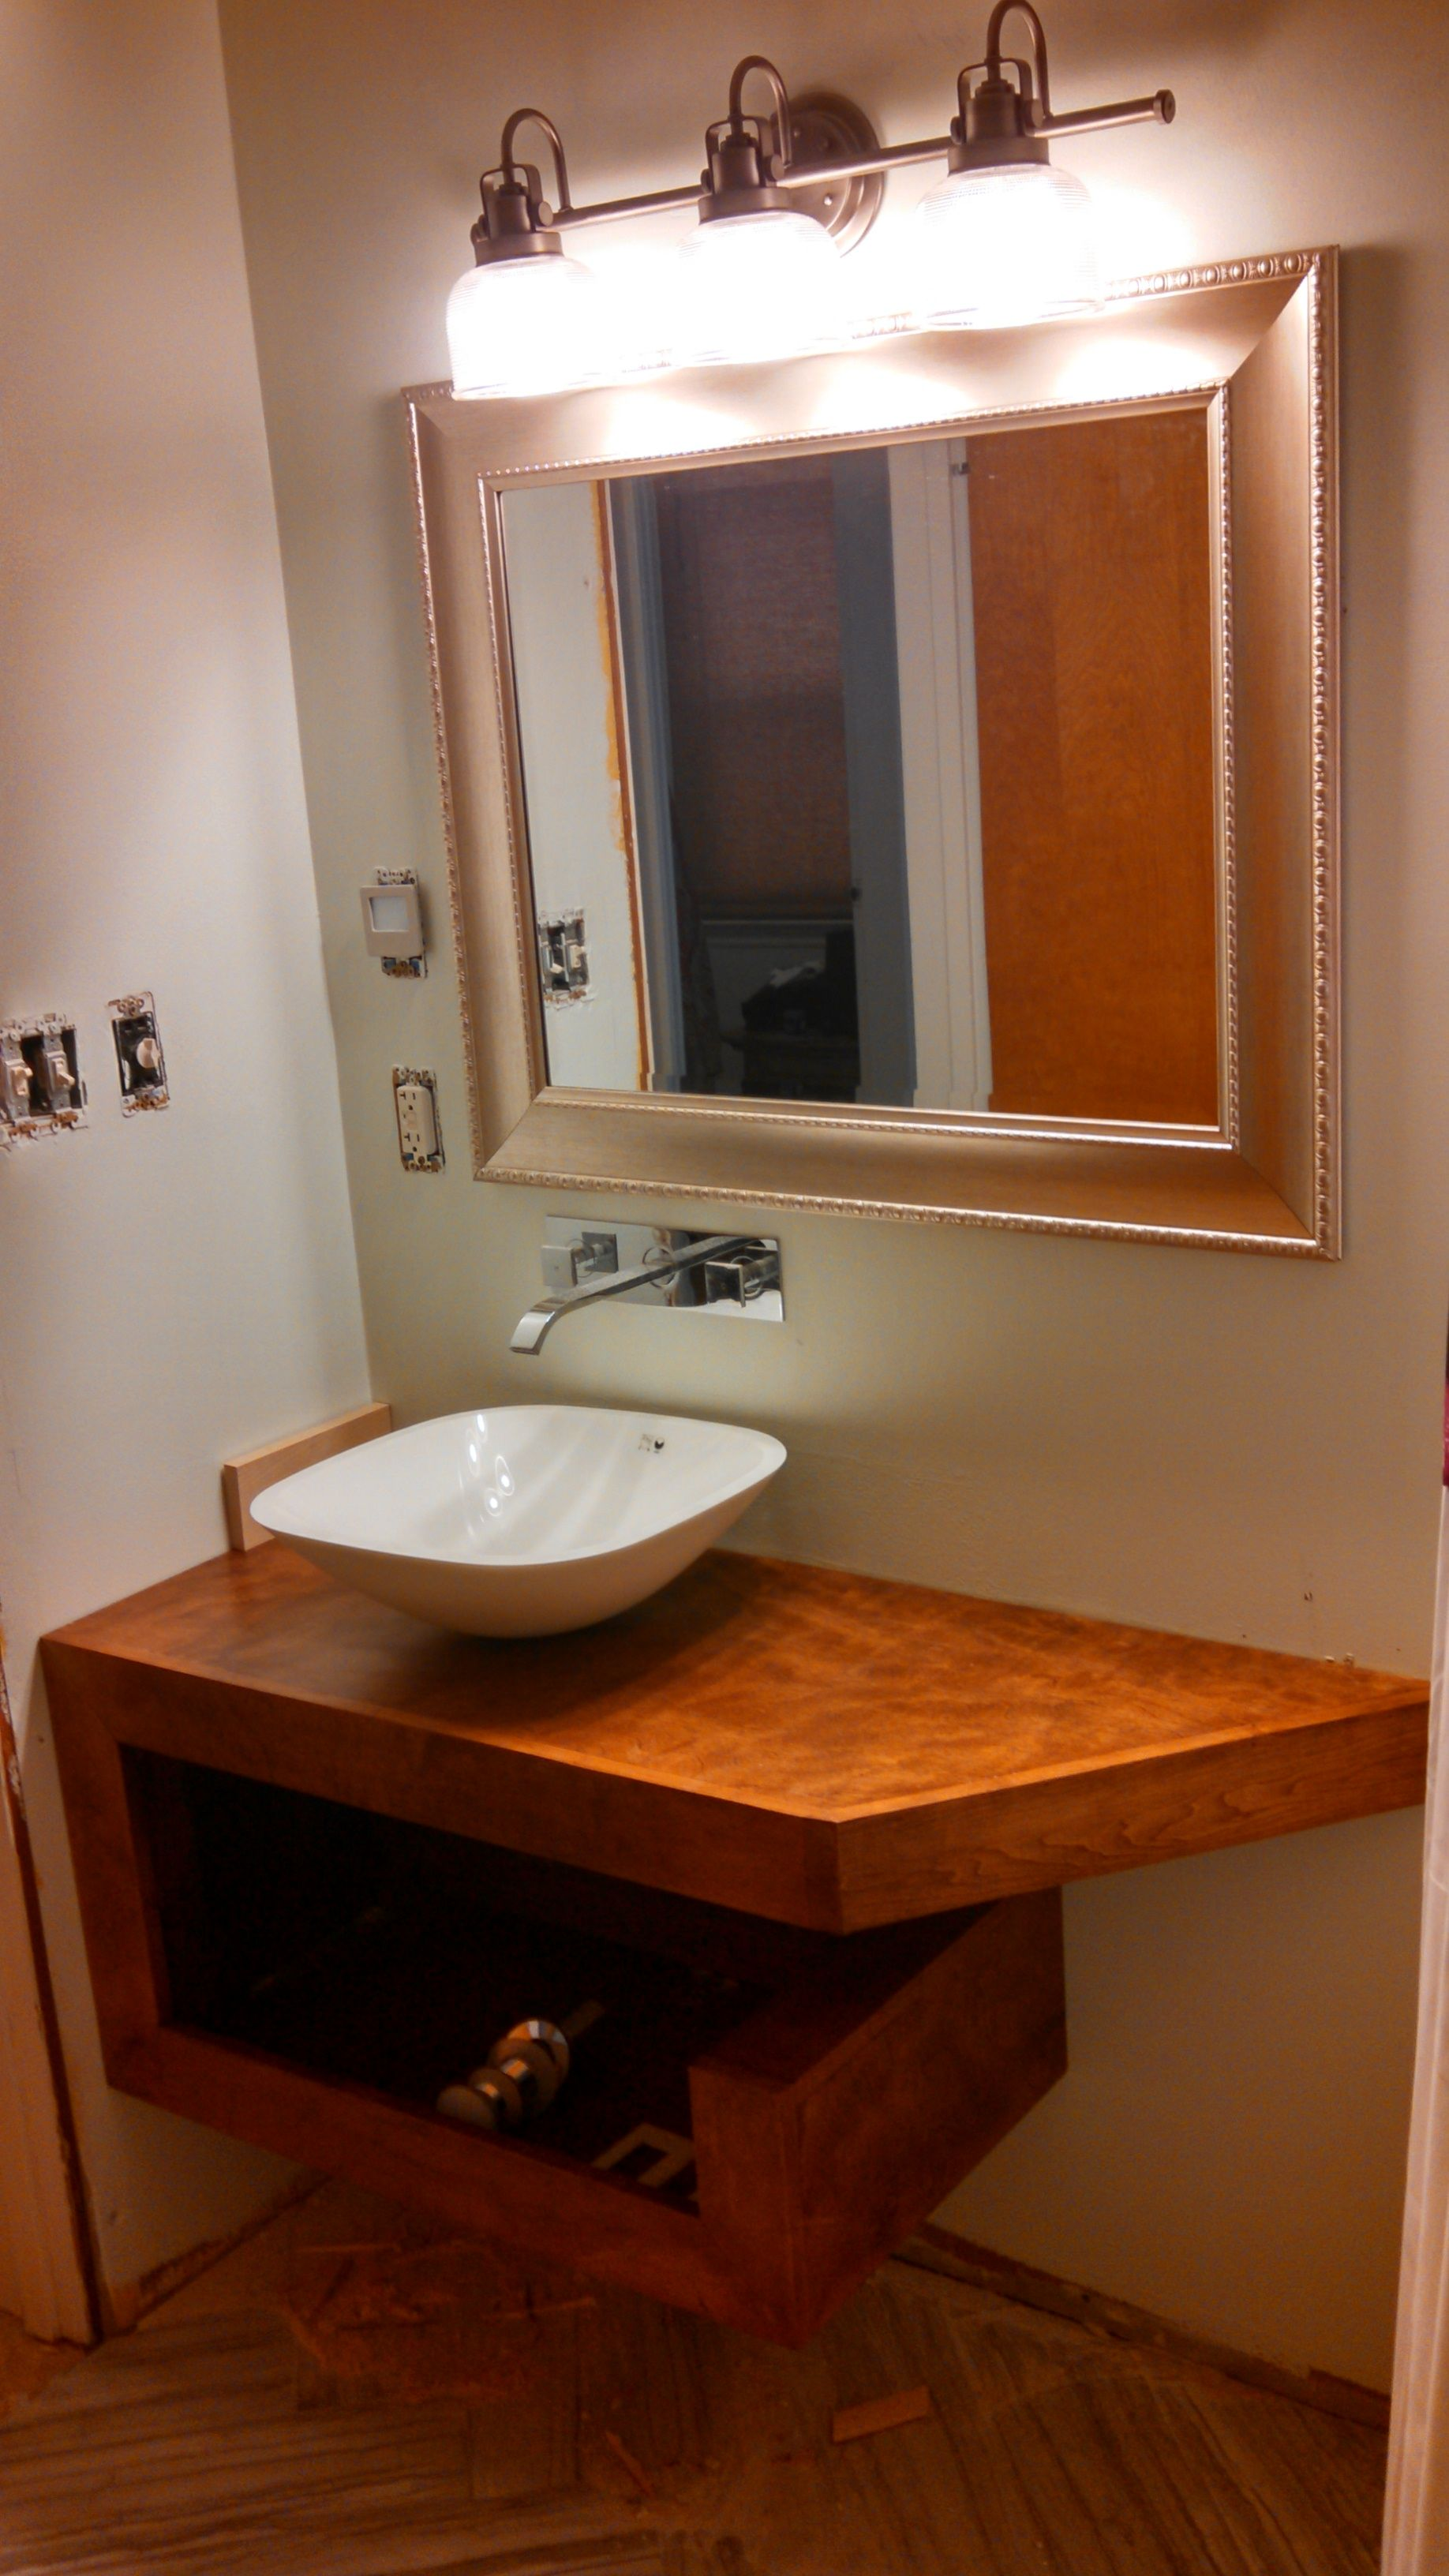 Andys blog thoughts i think floating bathroom